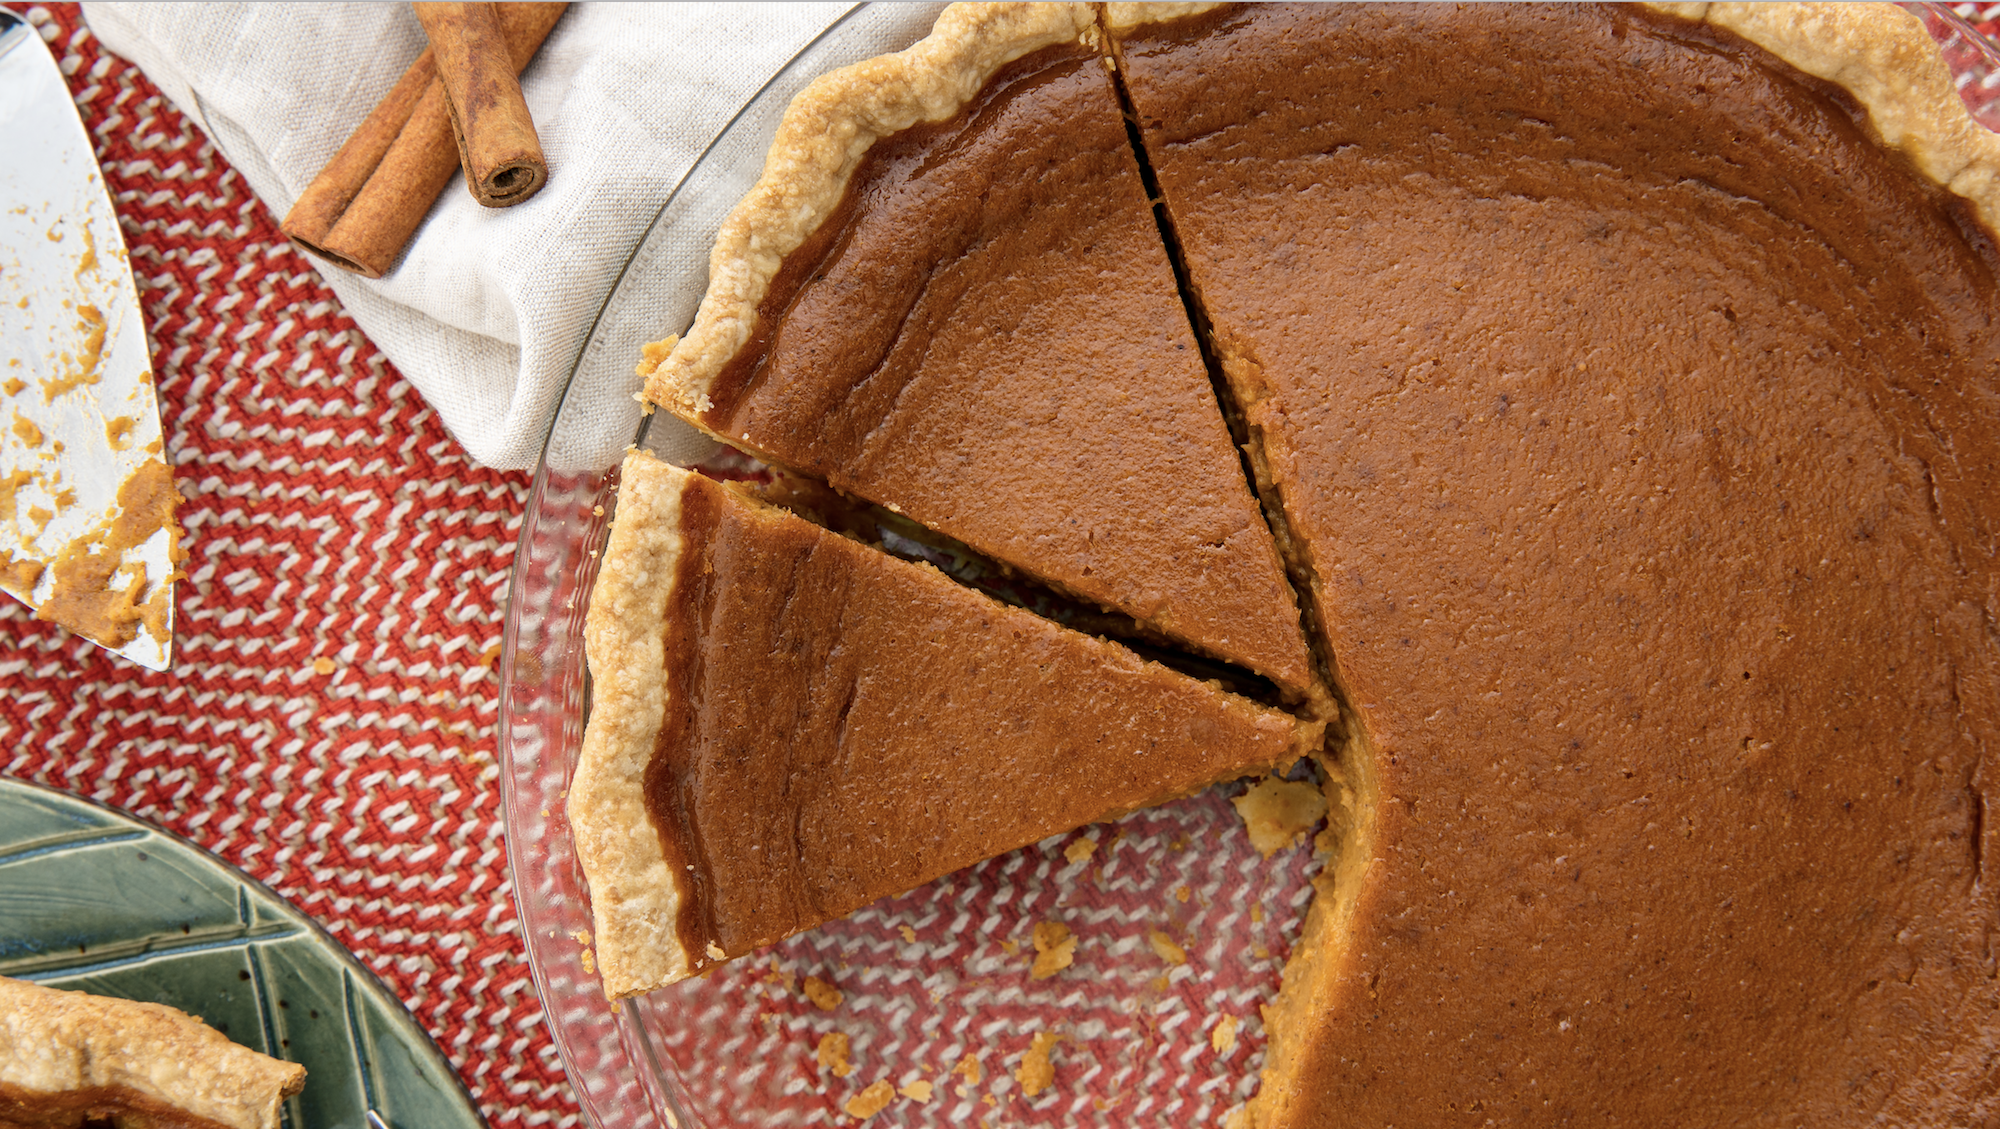 How To Store Pies: How Long To Refrigerate, Freeze And Keep Them Out